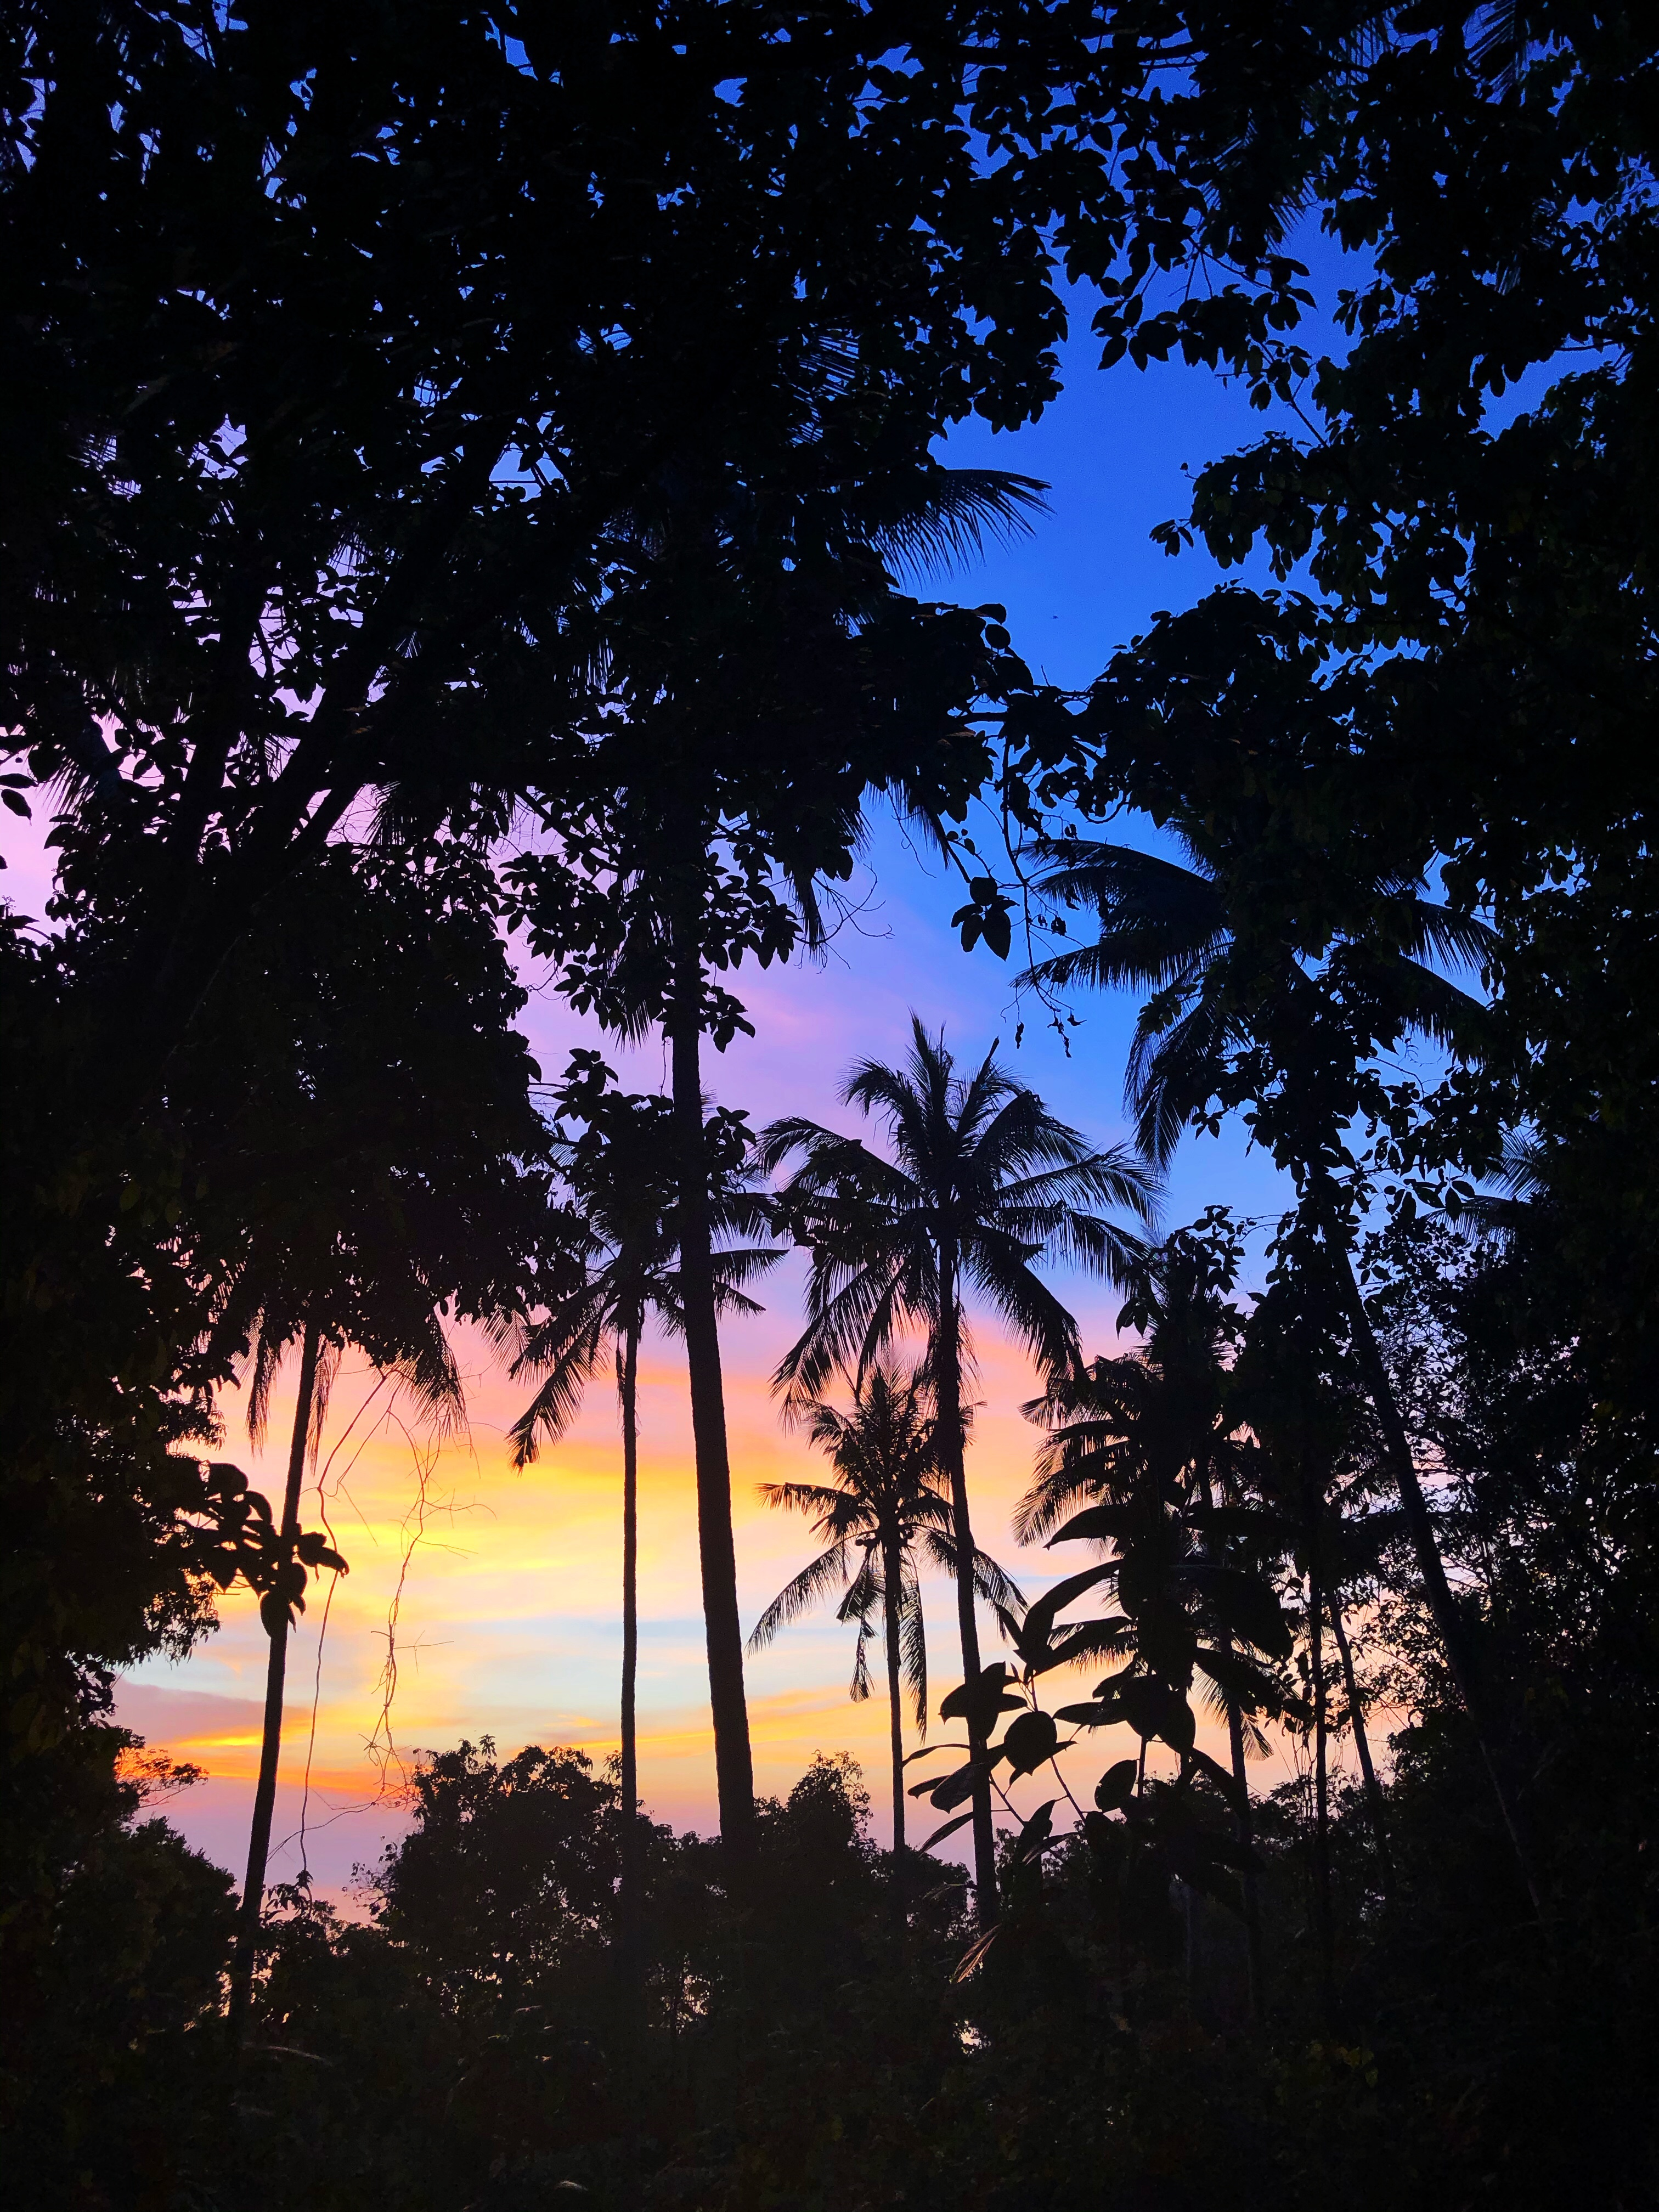 silhouettes of palm trees as the sun sets in the background